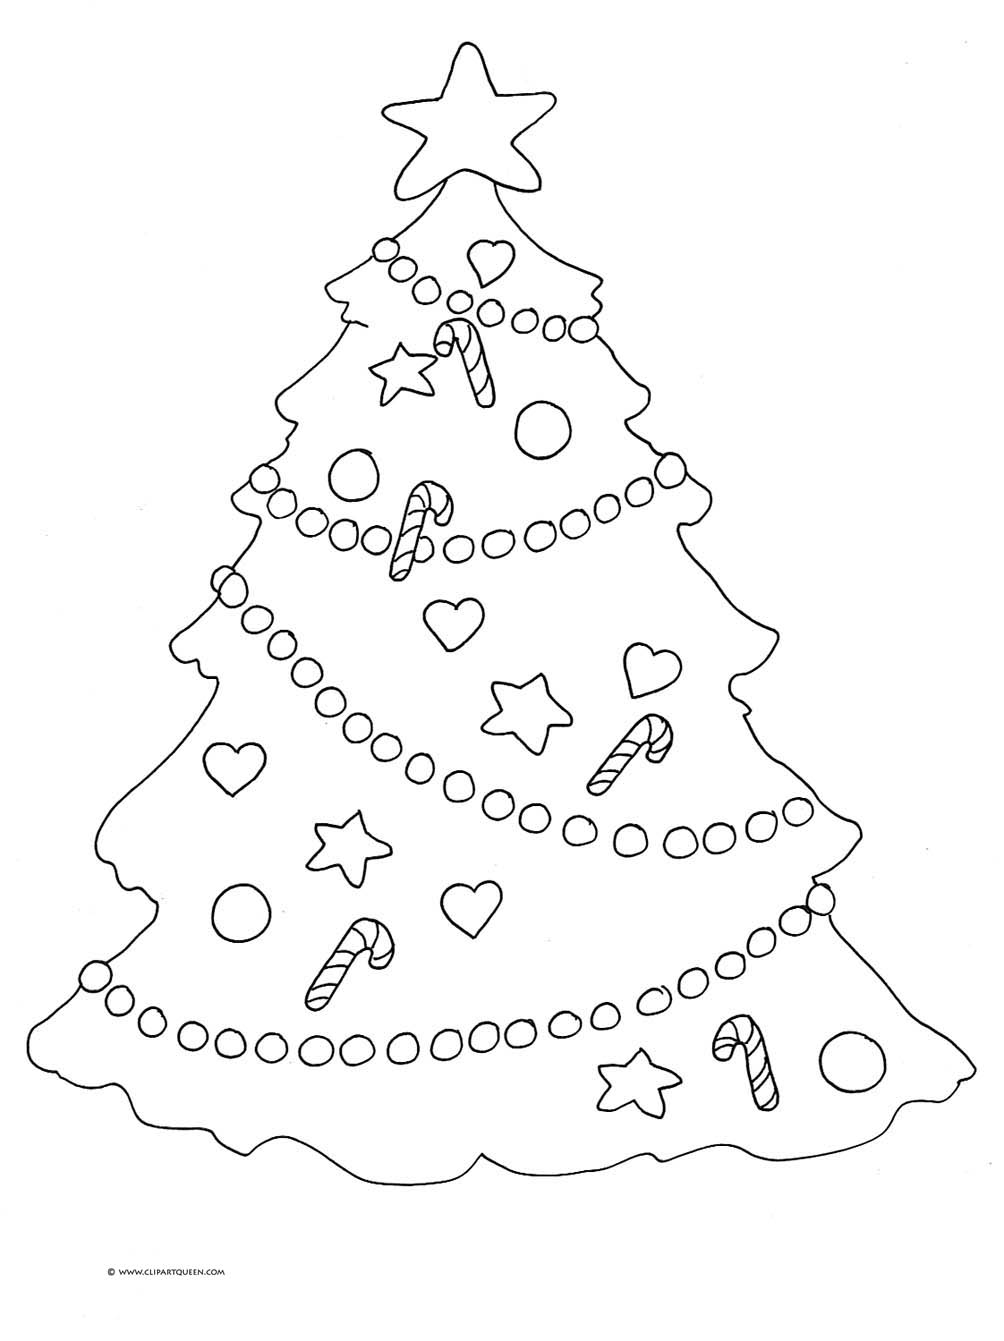 Geography Blog Christmas Tree Coloring Pages Tree Decorations Coloring Pages